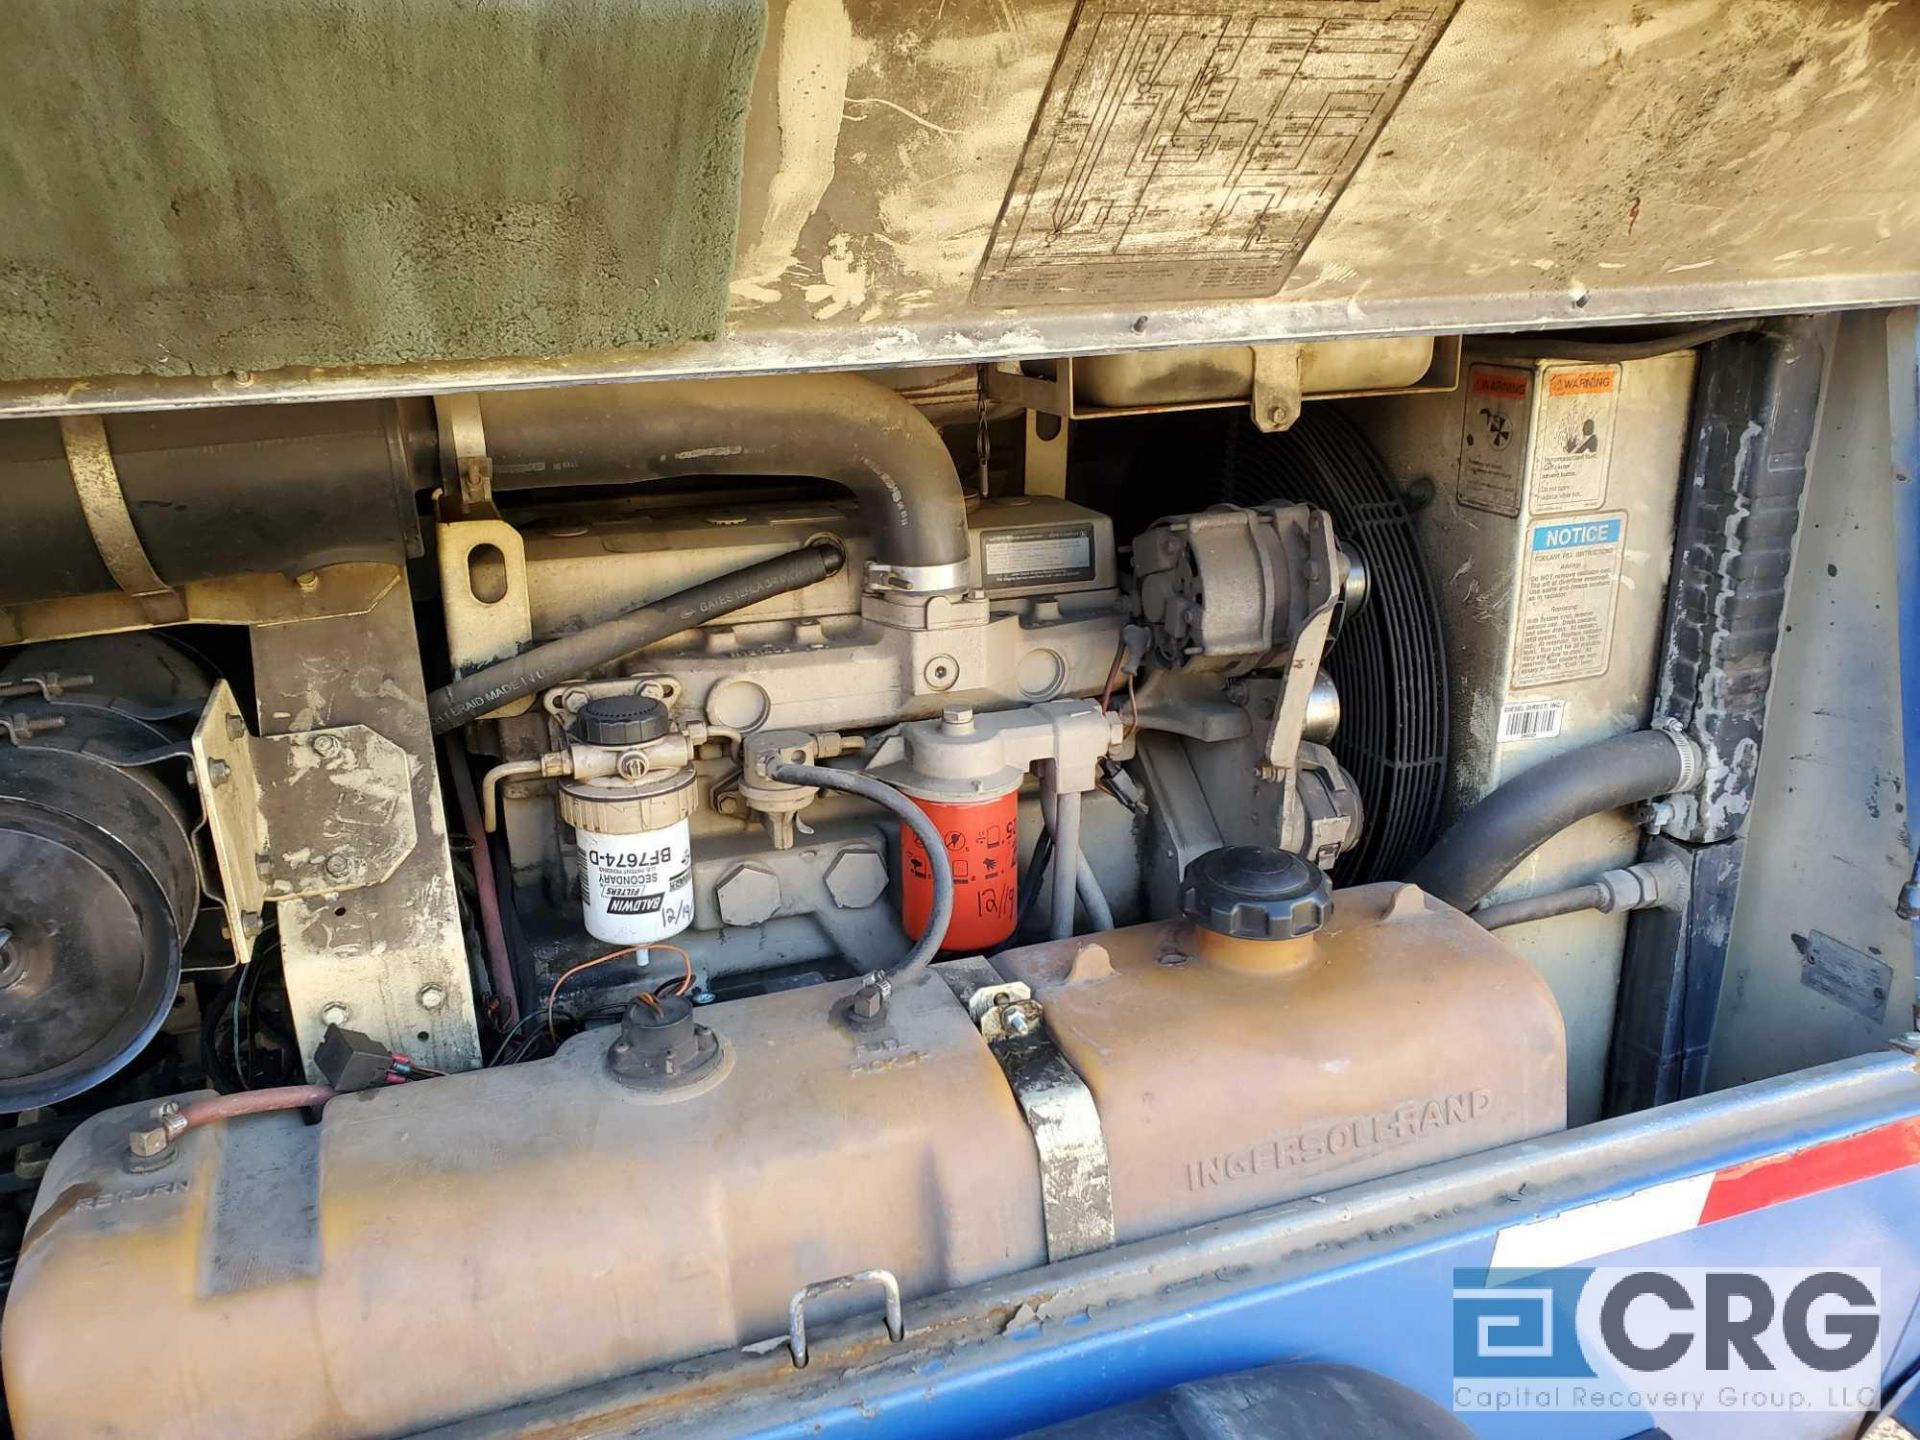 1997 Ingersoll Rand P185WJD tag along Air Compressor - Image 5 of 7